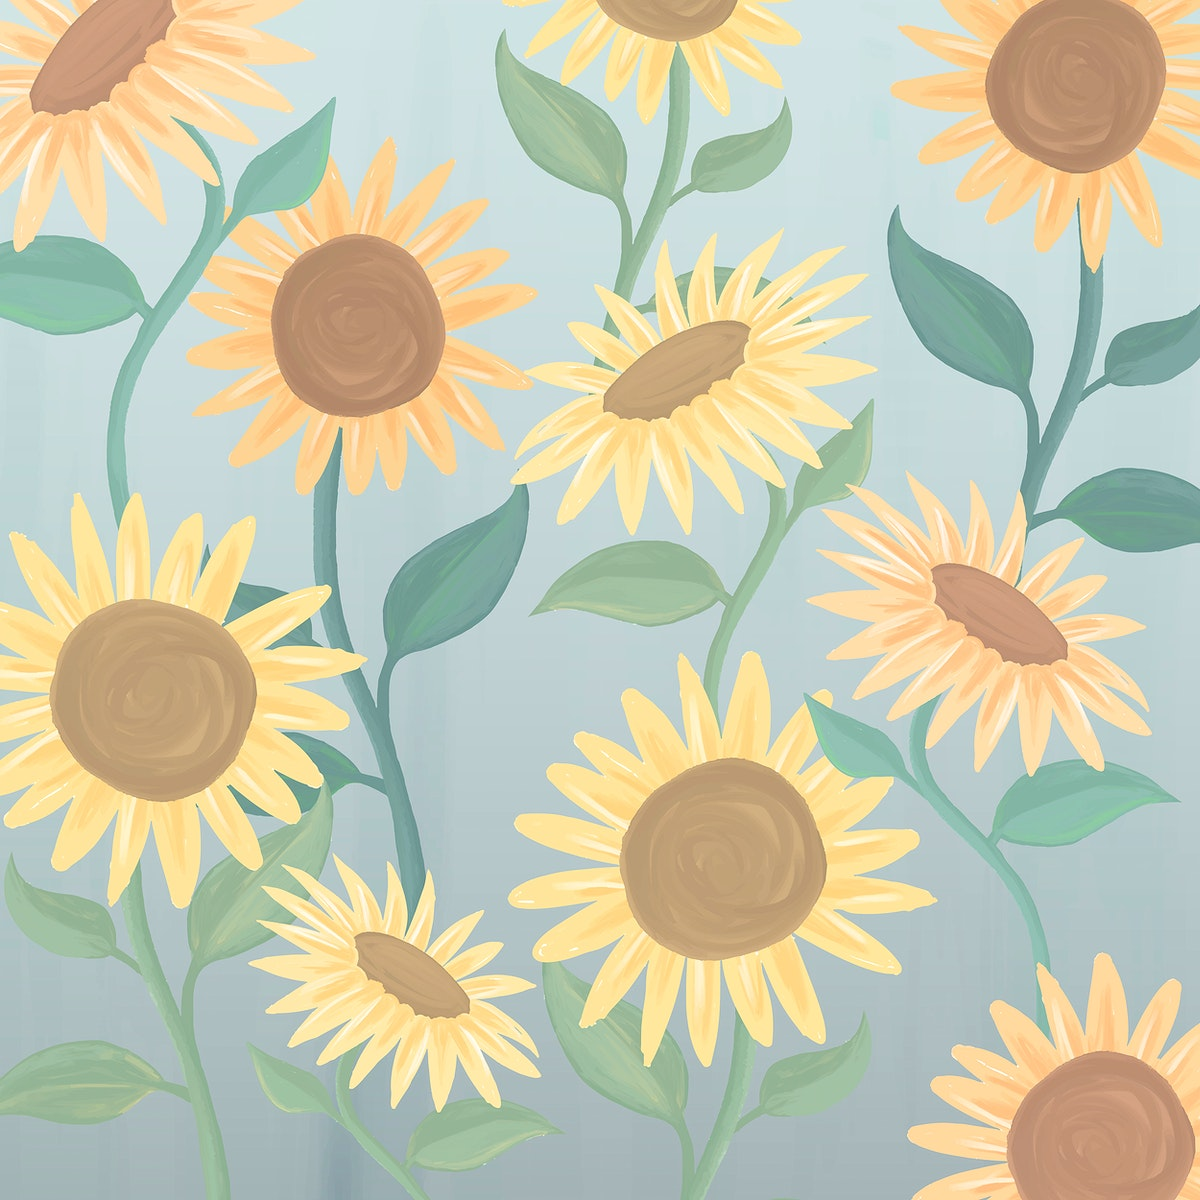 Hand drawn sunflower patterned background vector